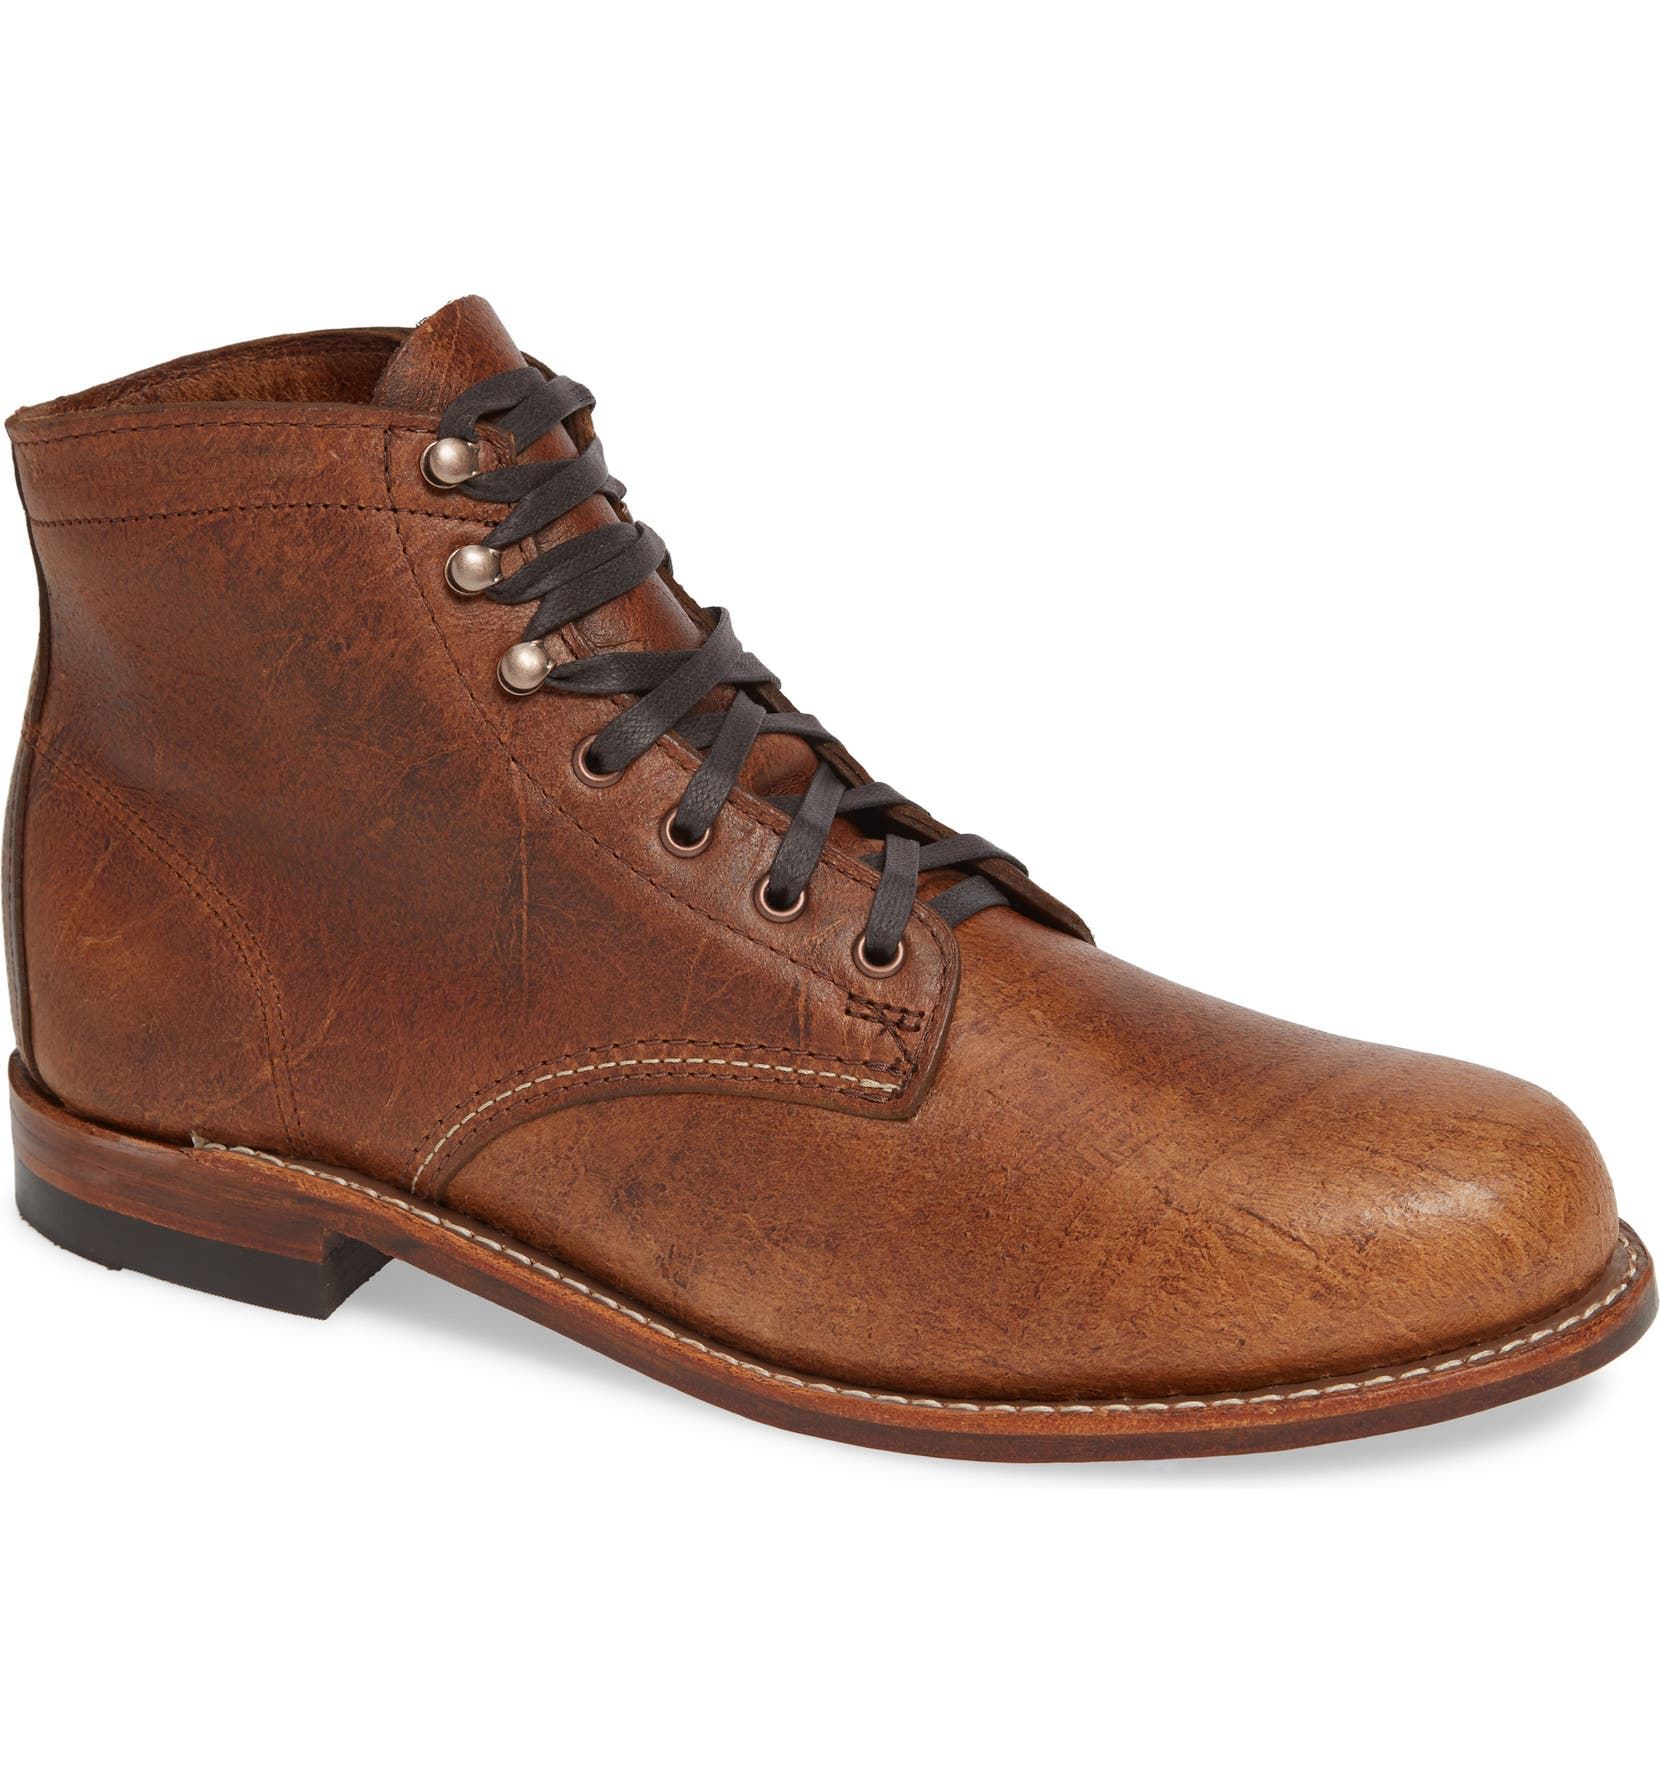 7c066318209 '1000 Mile' Plain Toe Boot